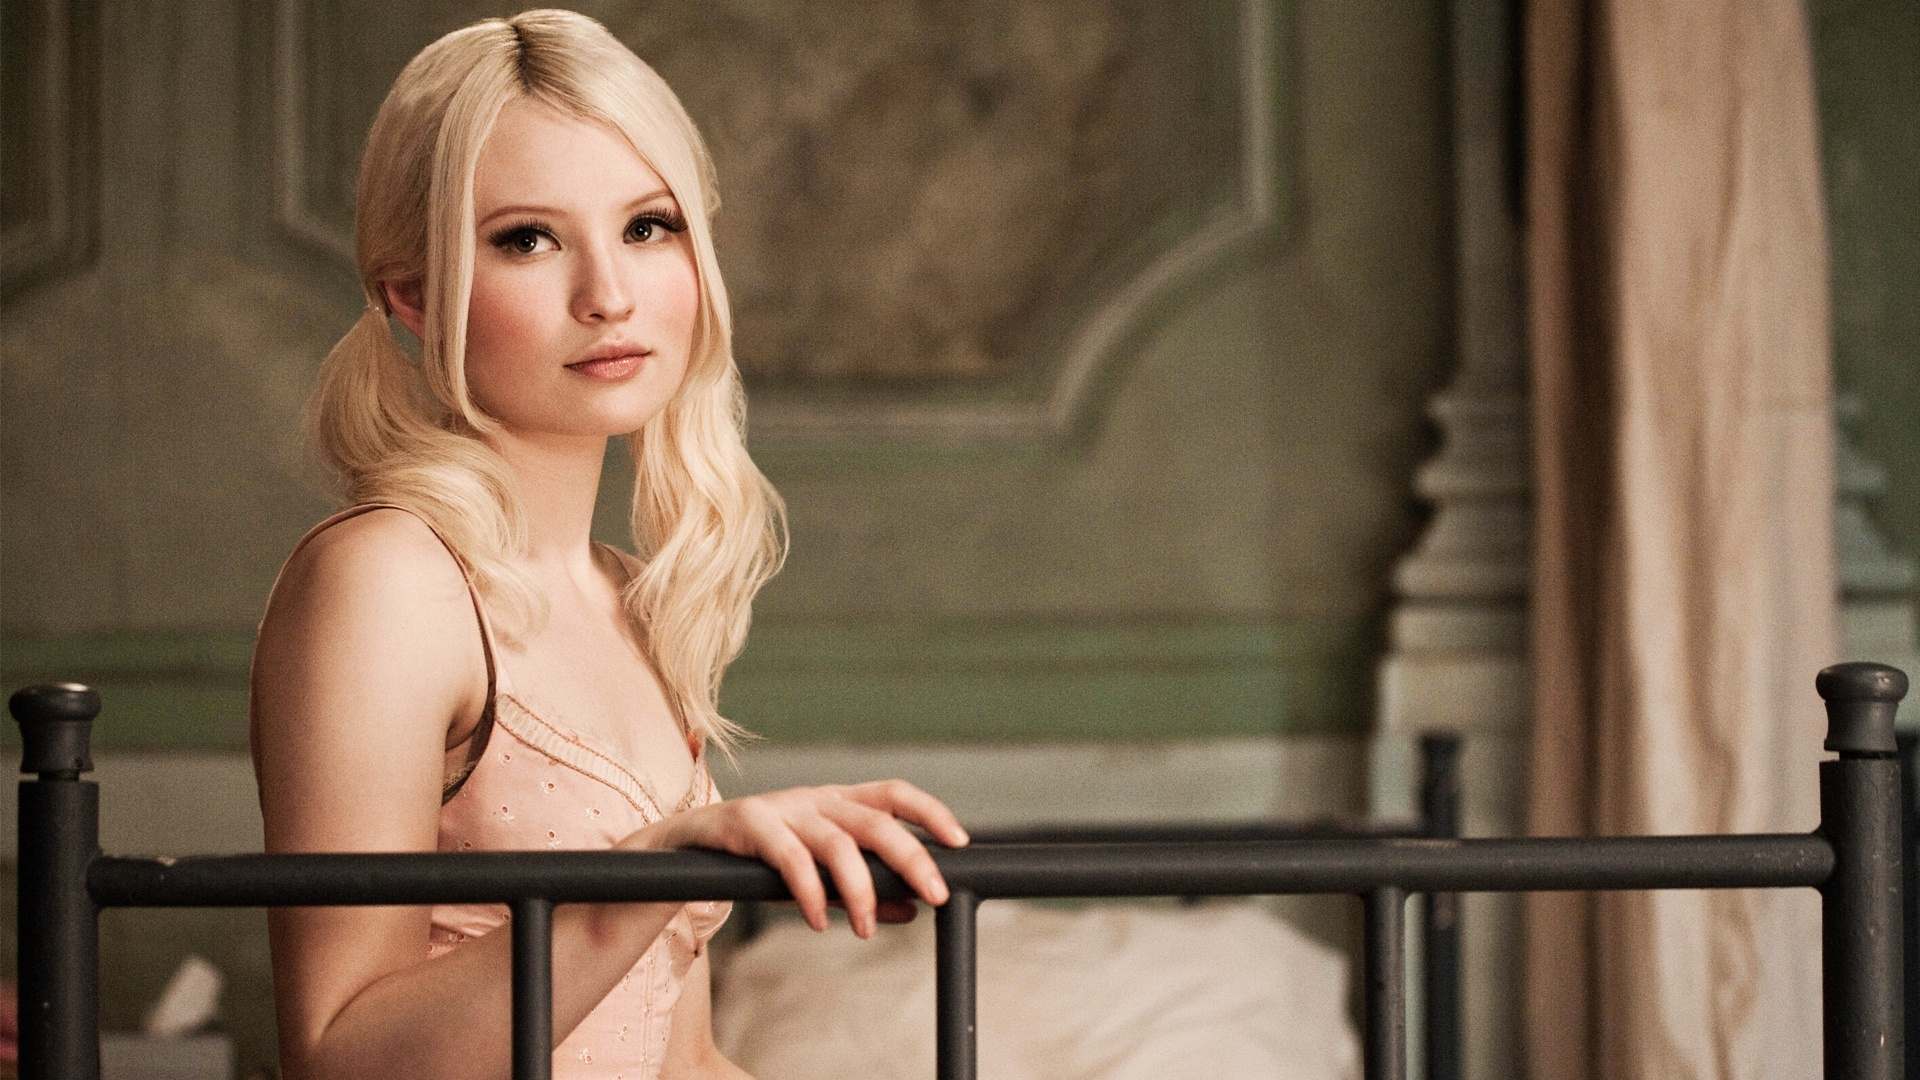 emily browning wallpapers hd a3